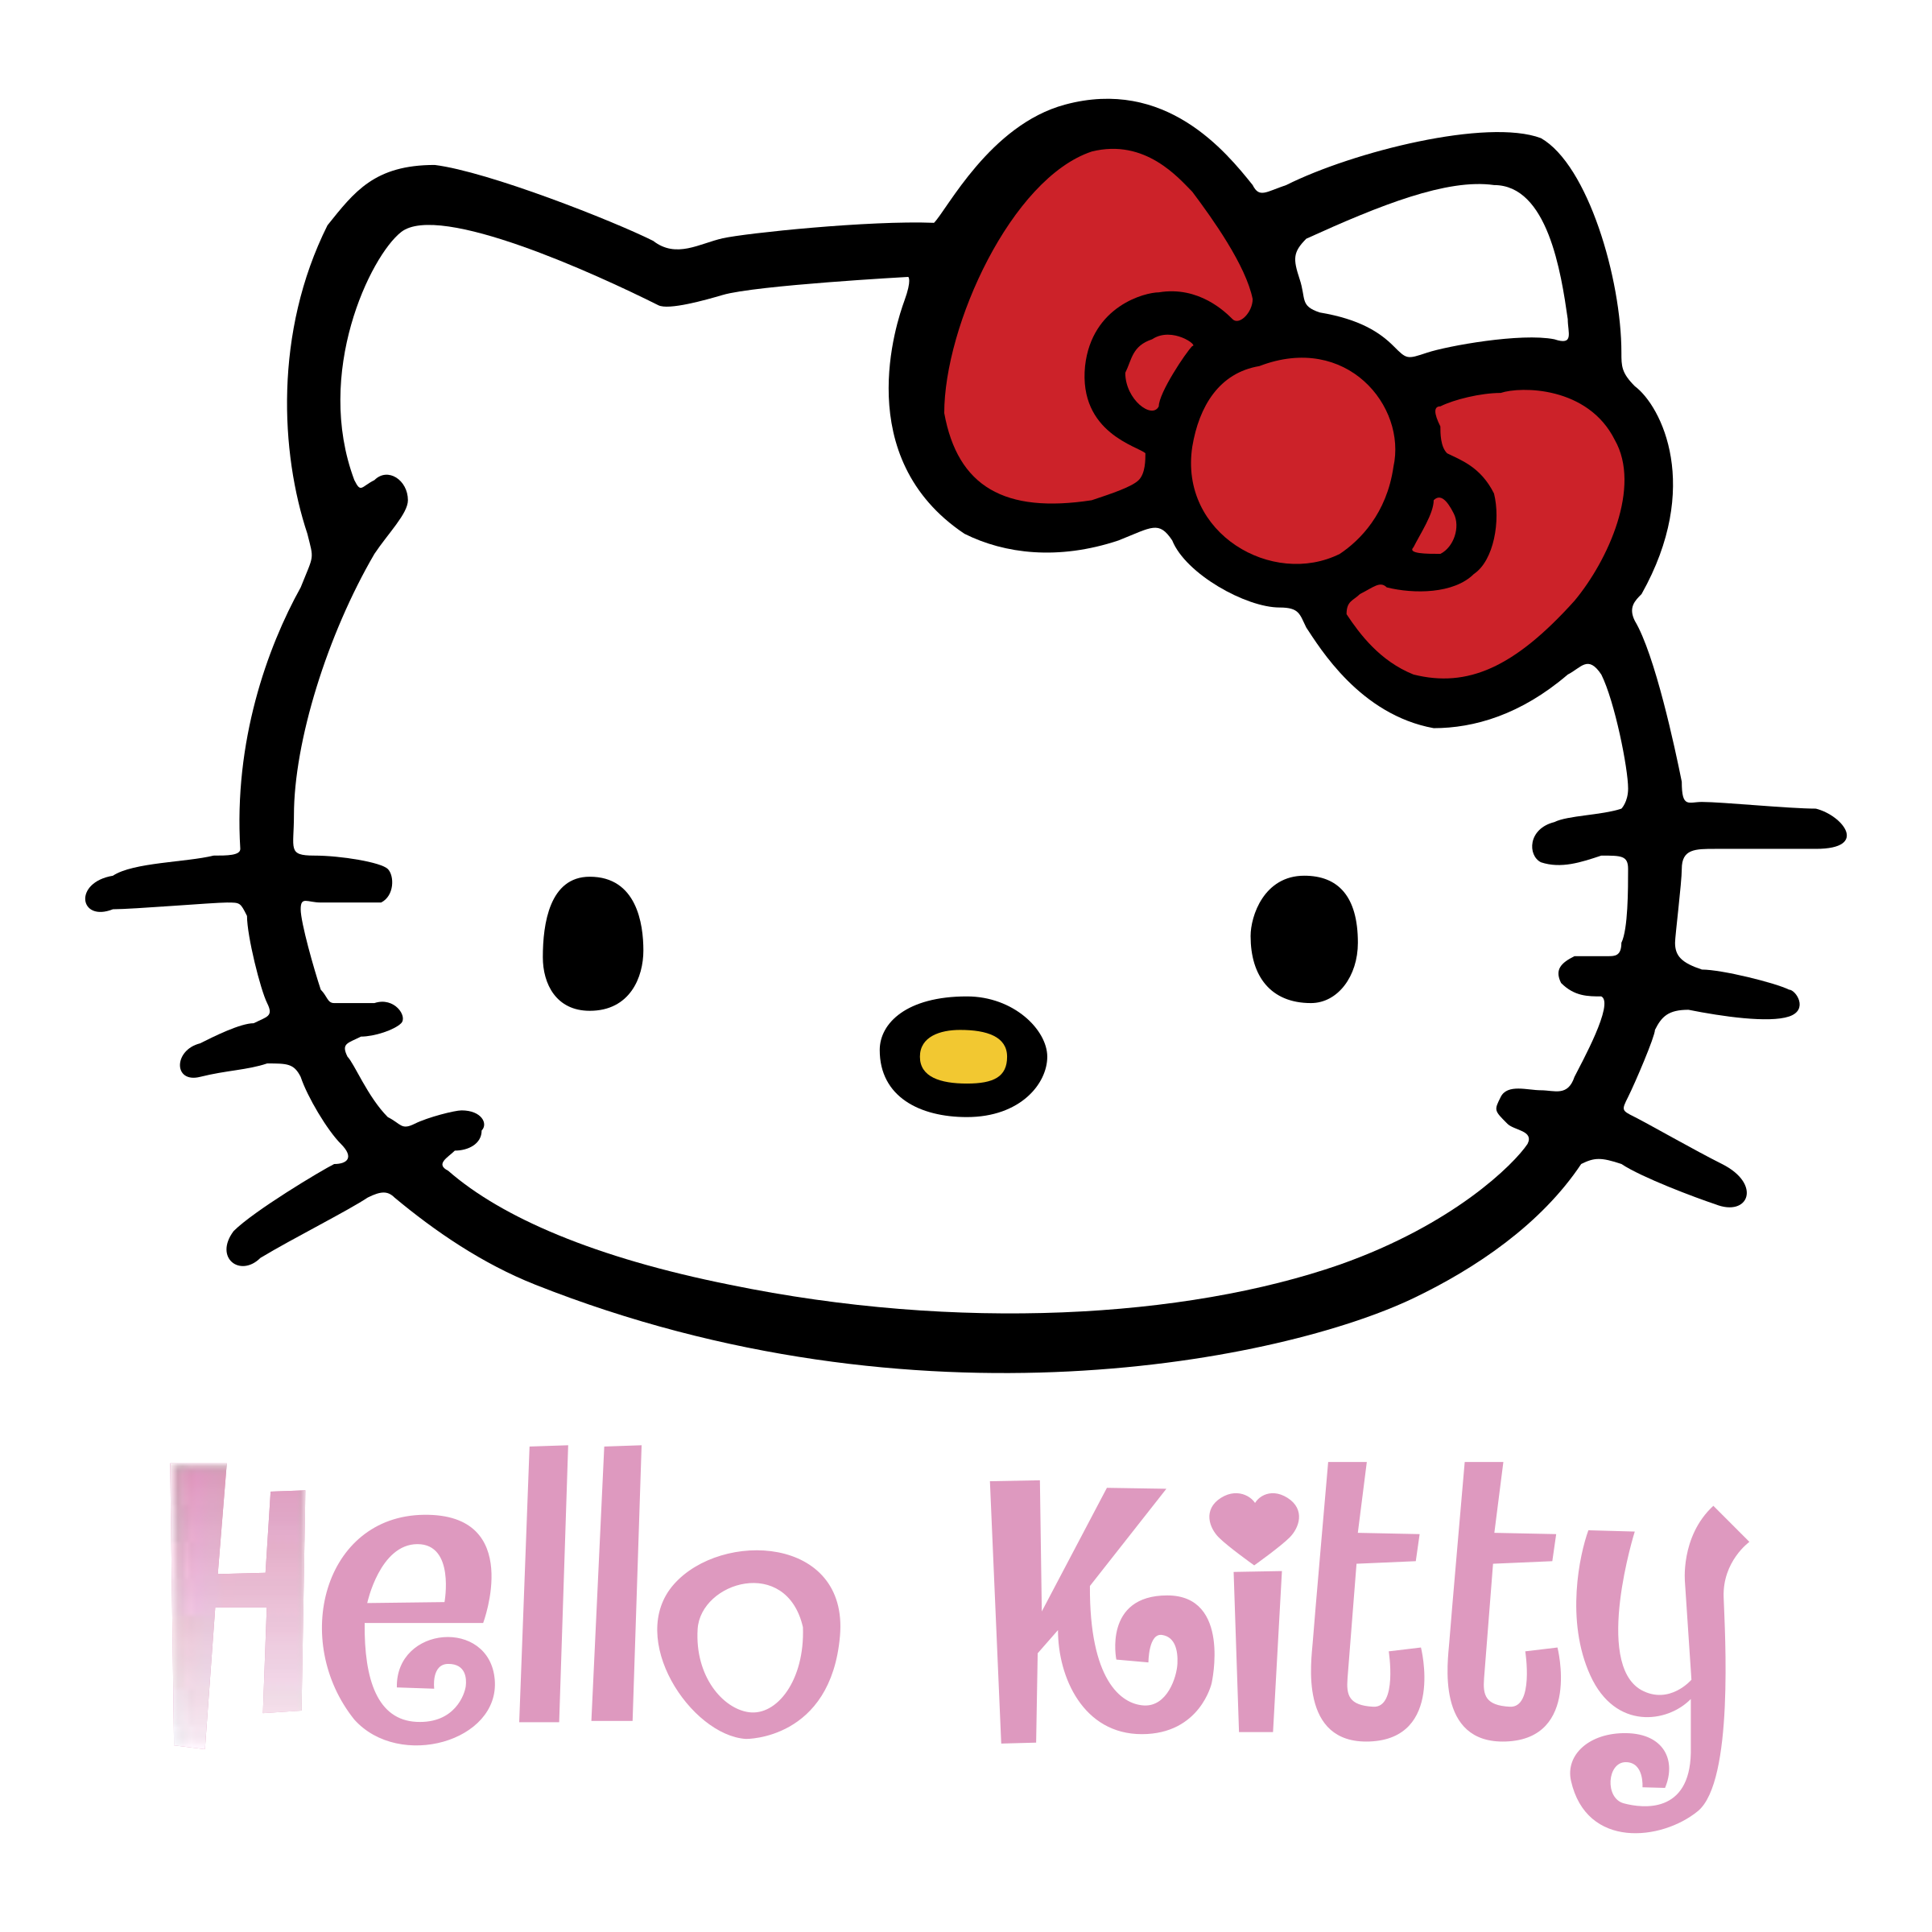 2400x2400 Hello Kitty Logo Png Transparent Amp Svg Vector